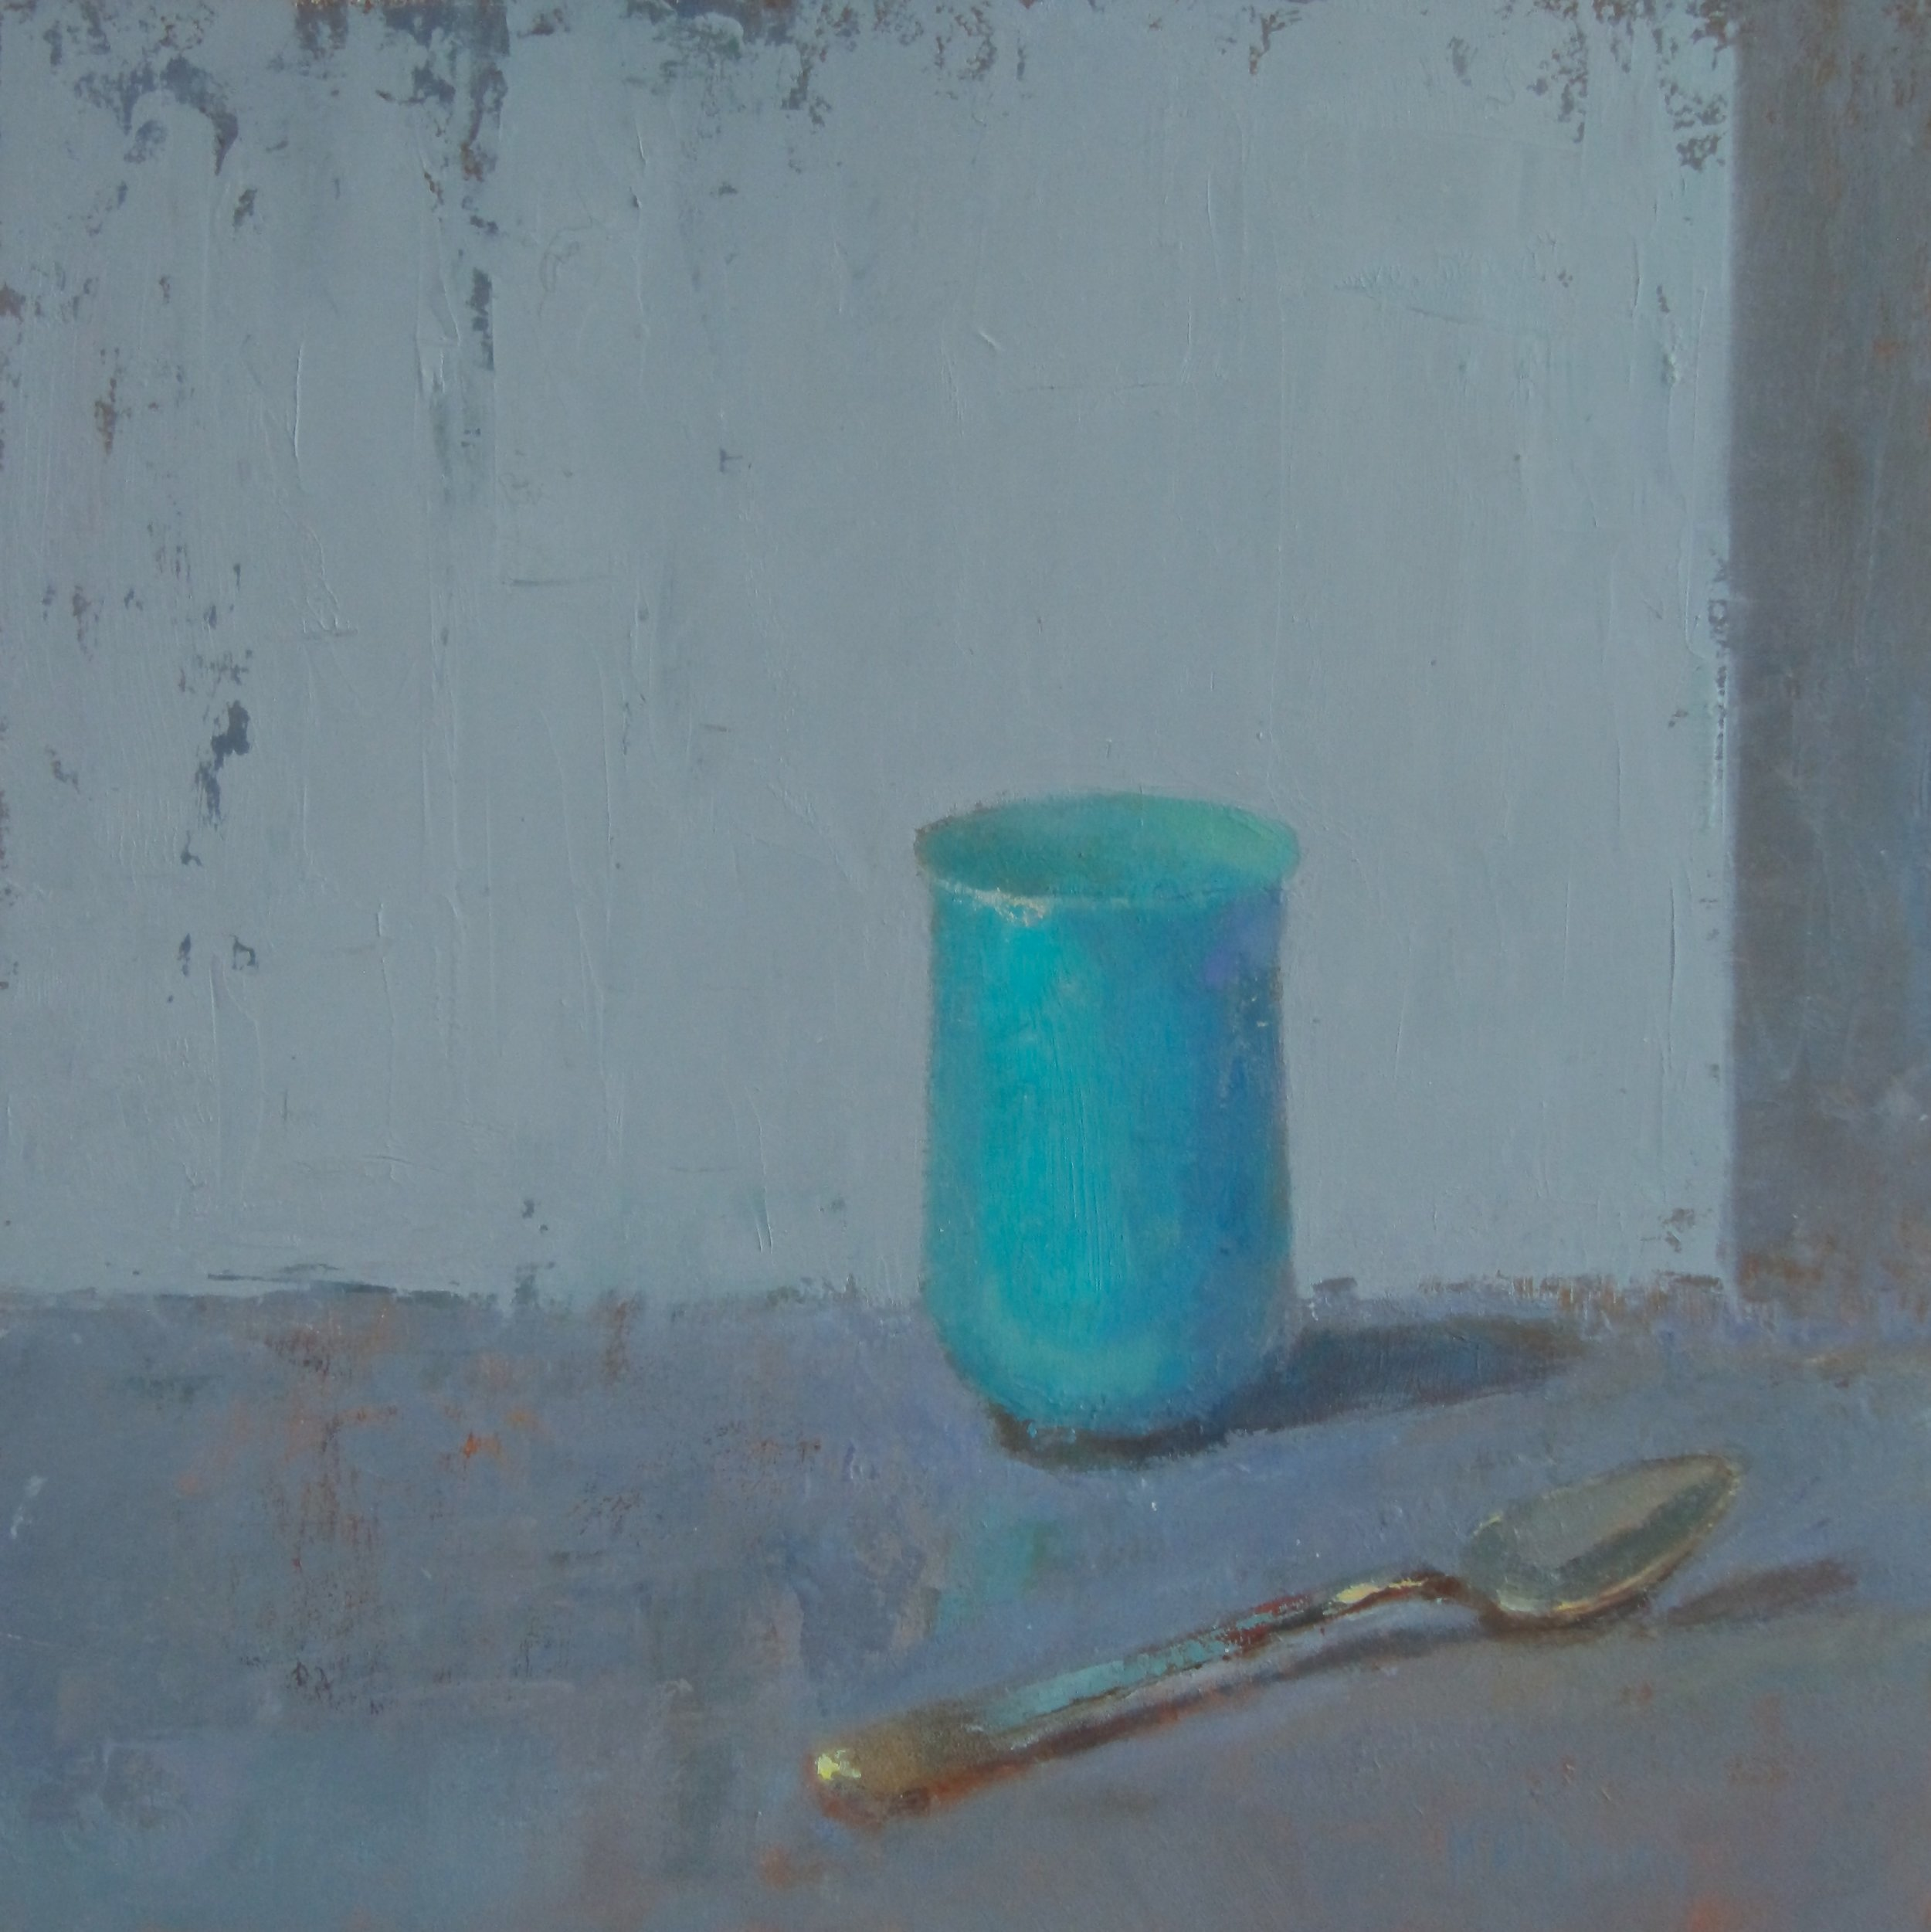 Silver Spoon and the Turquoise Cup.JPG